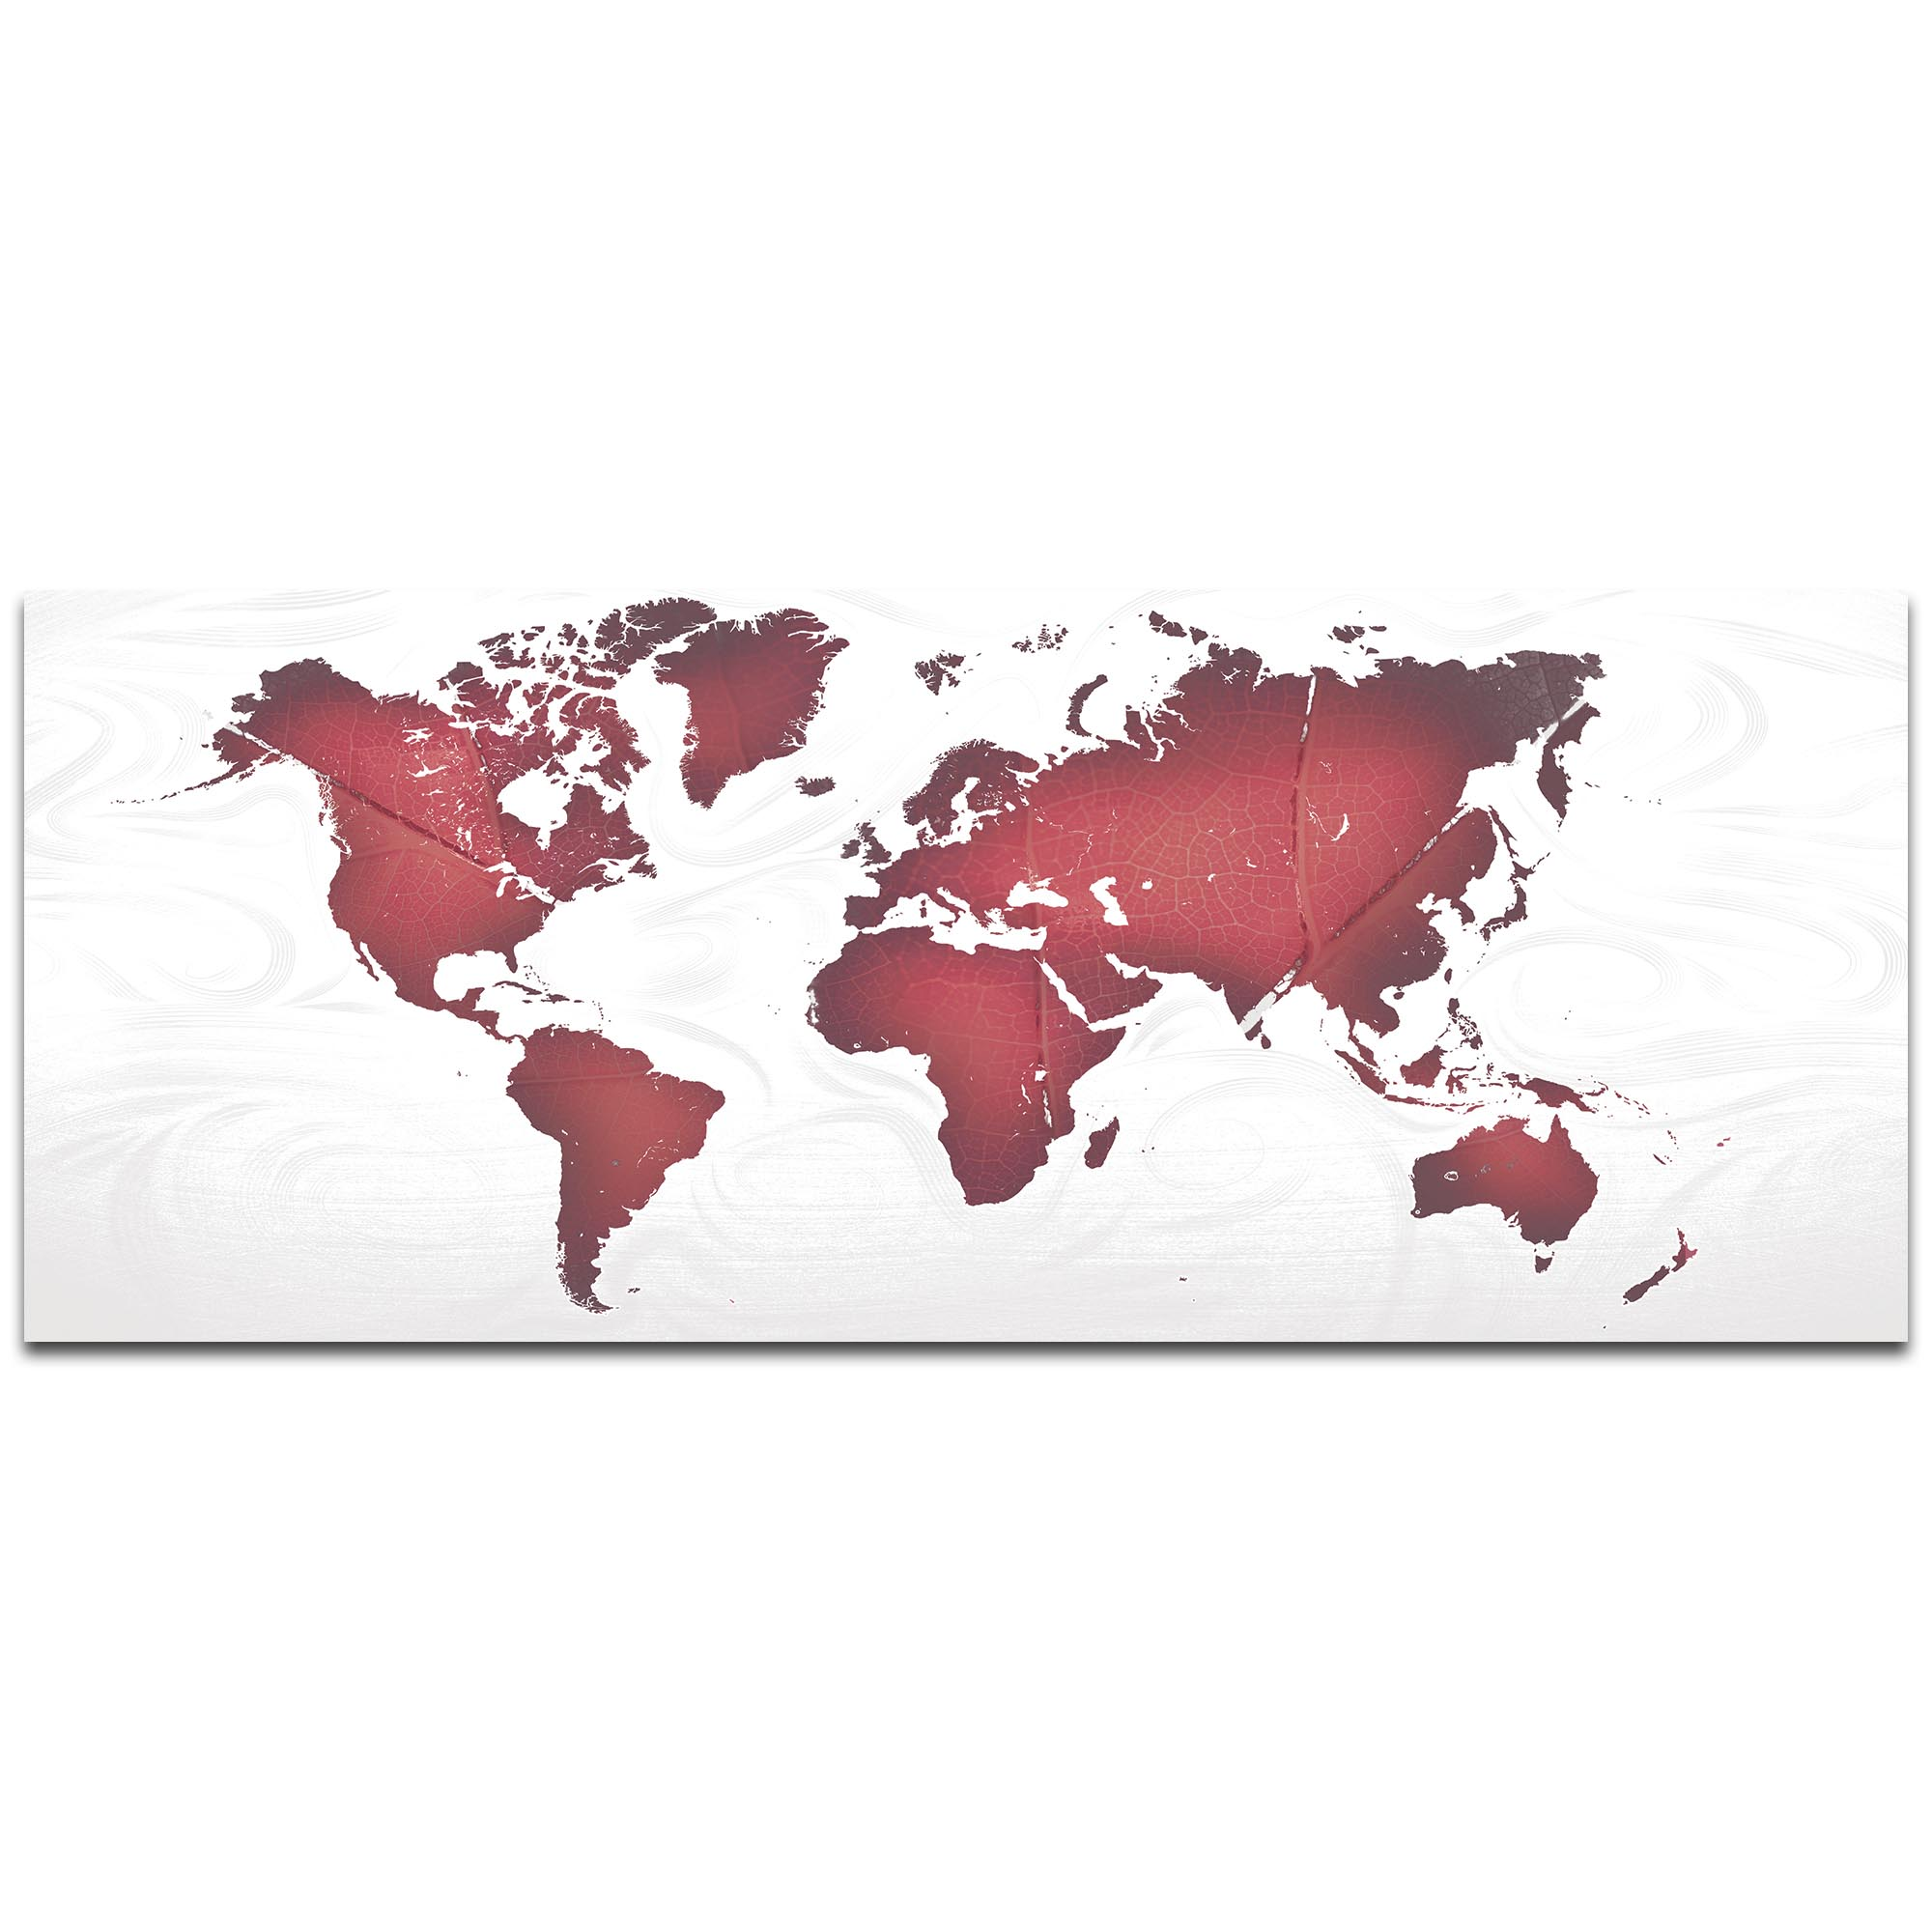 Abstract World Map 'Red White Land and Sea' - Urban Wall Art on Metal or Acrylic